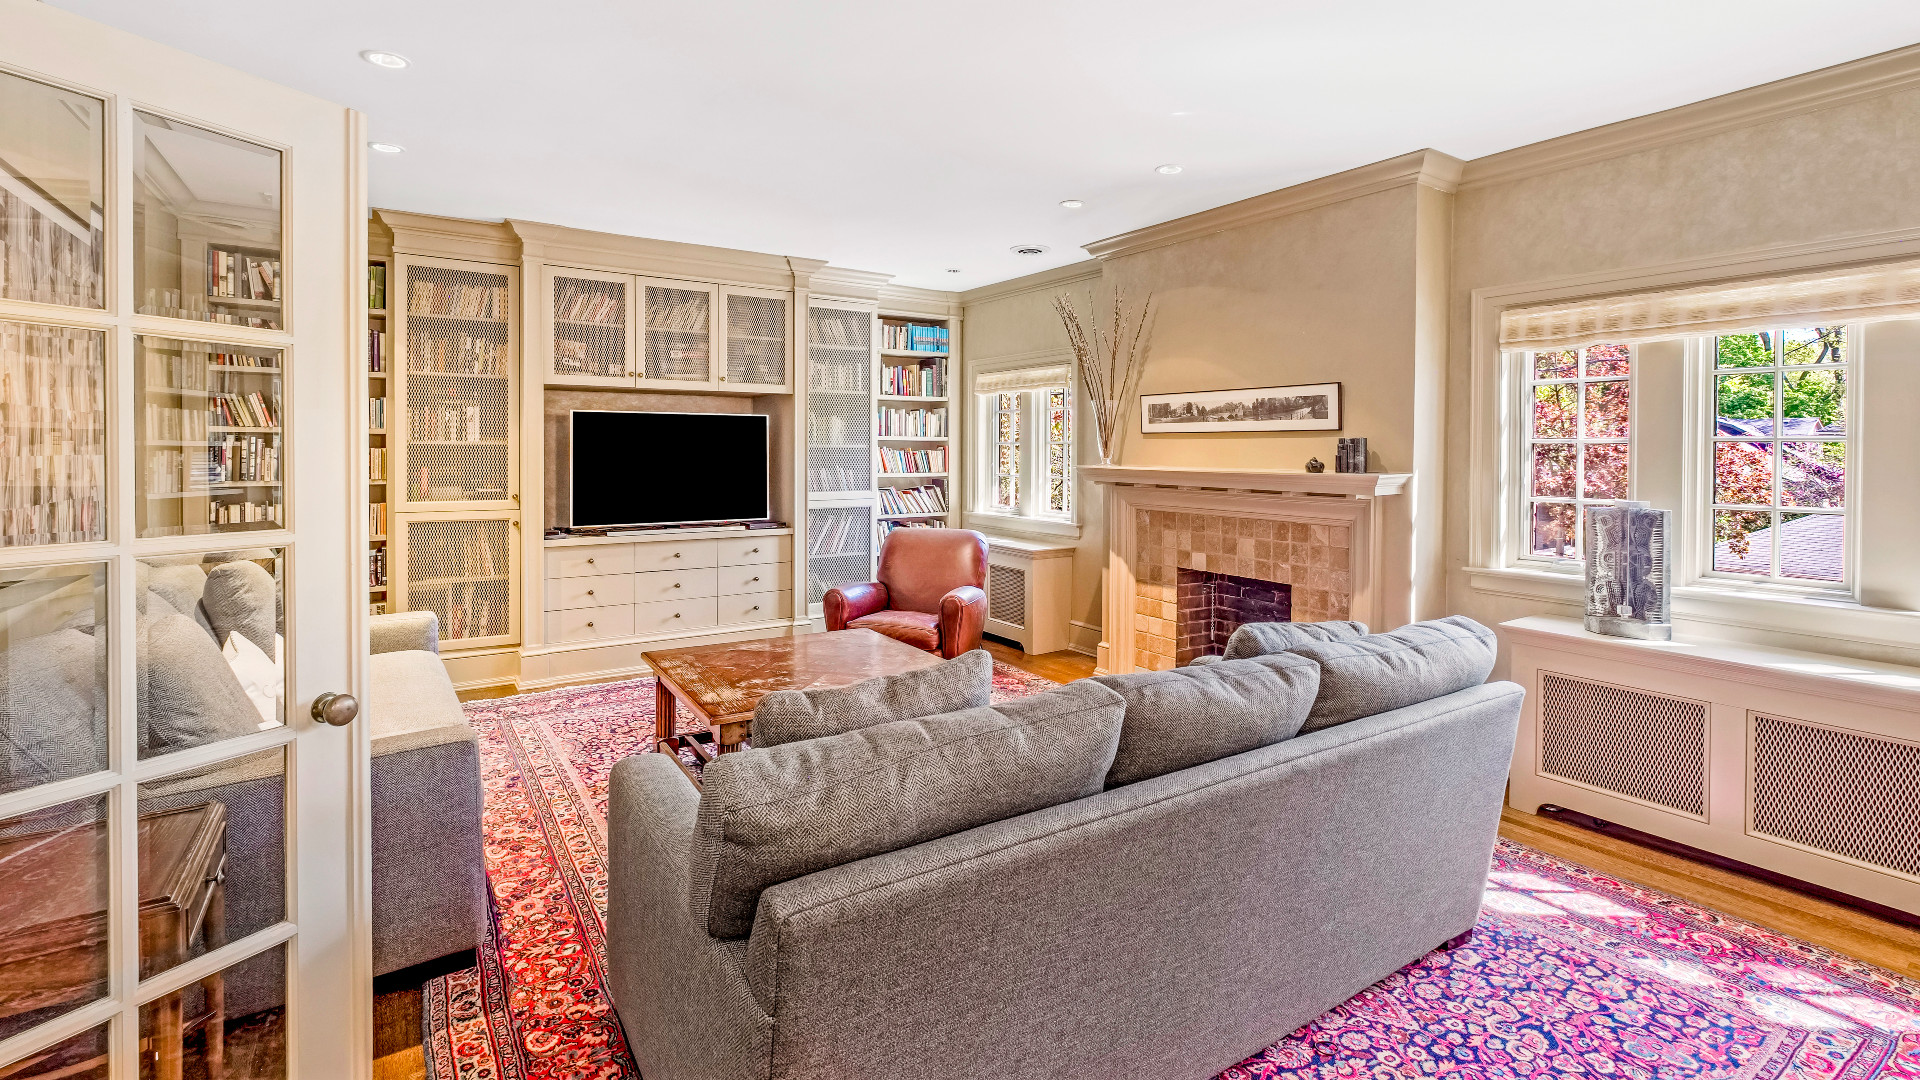 A photo of the family room.